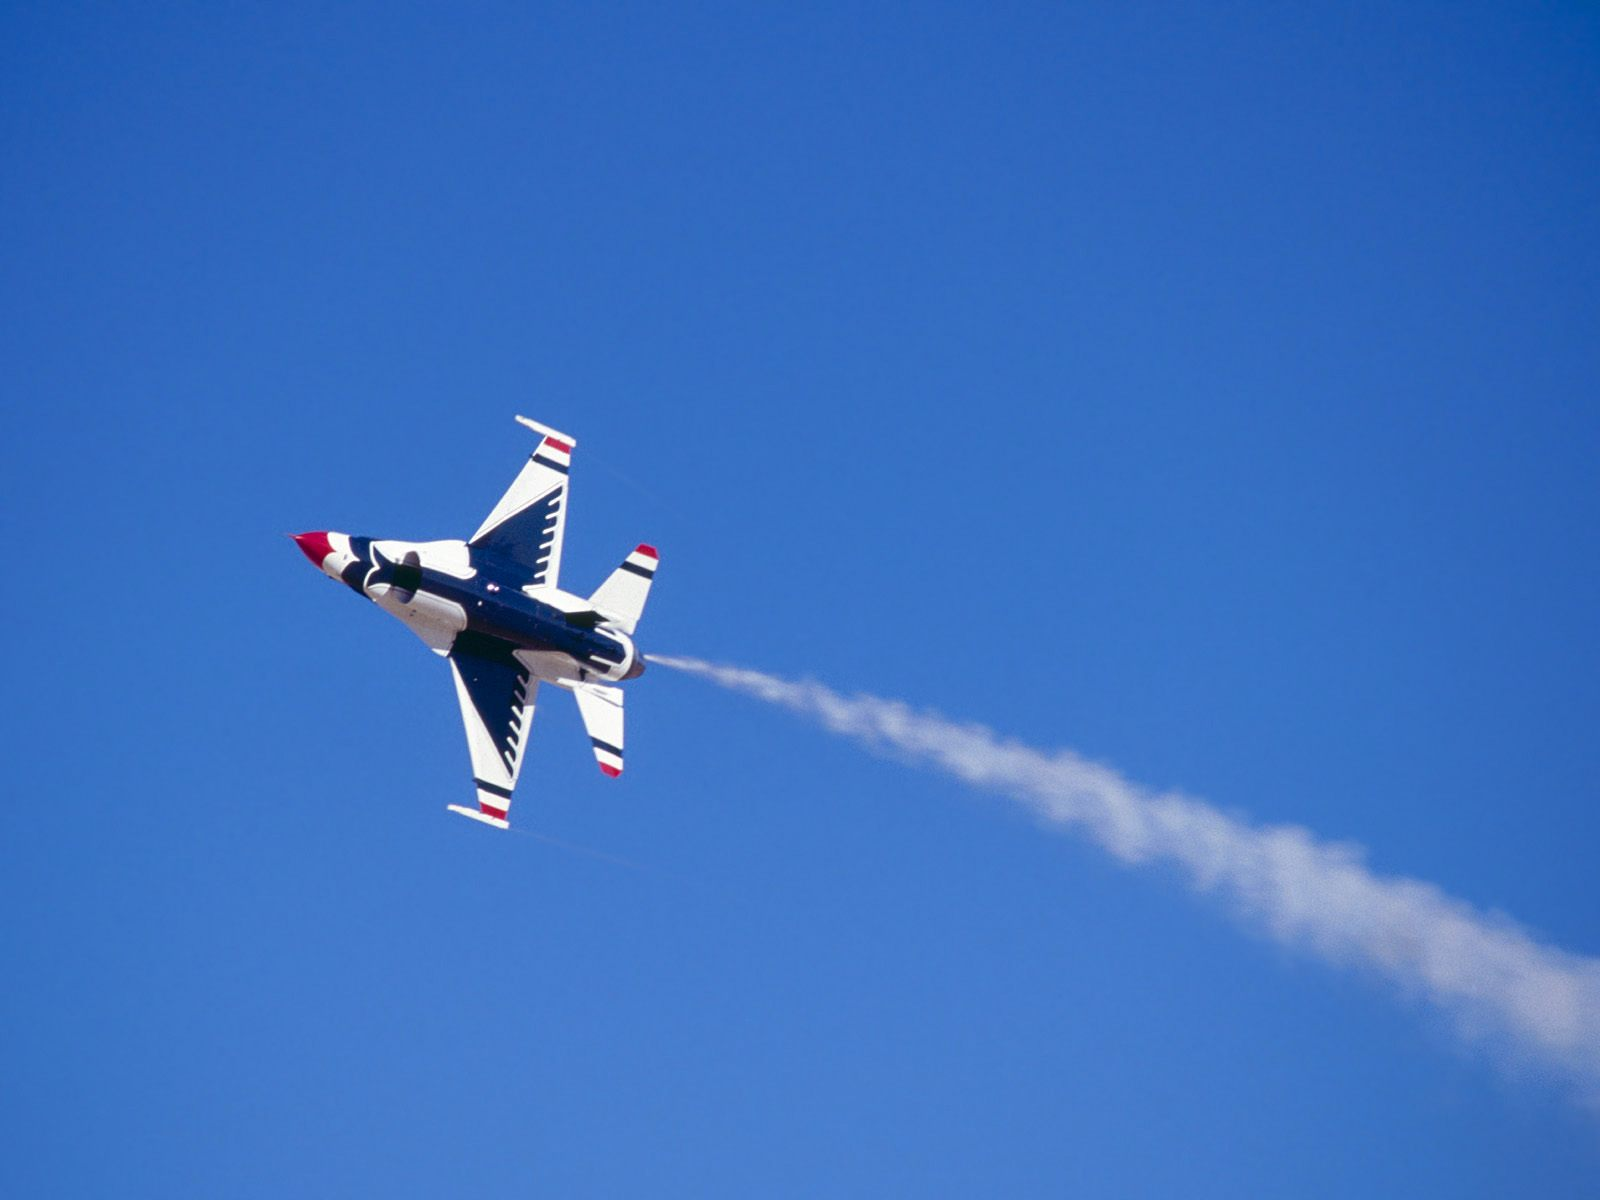 Twirling The Air Thunderbird